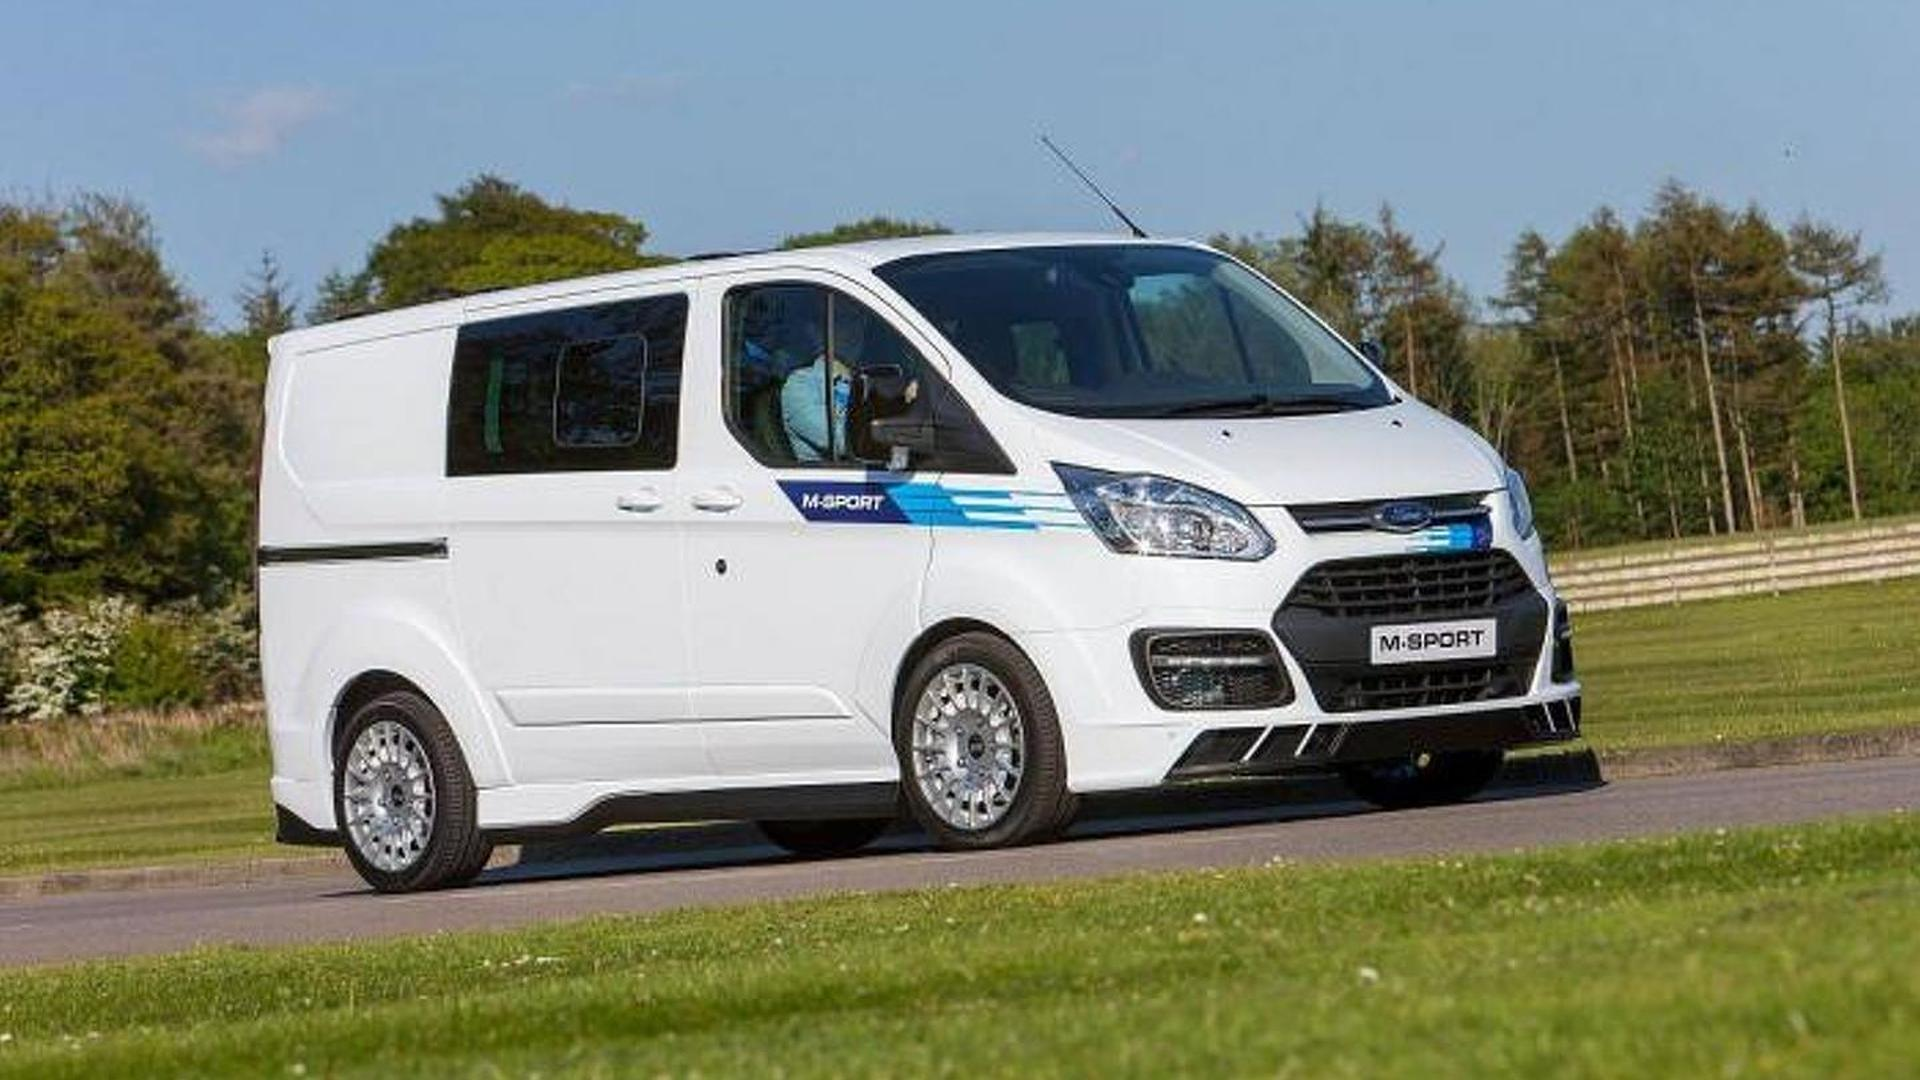 wrc inspired ford transit by m sport revealed. Black Bedroom Furniture Sets. Home Design Ideas